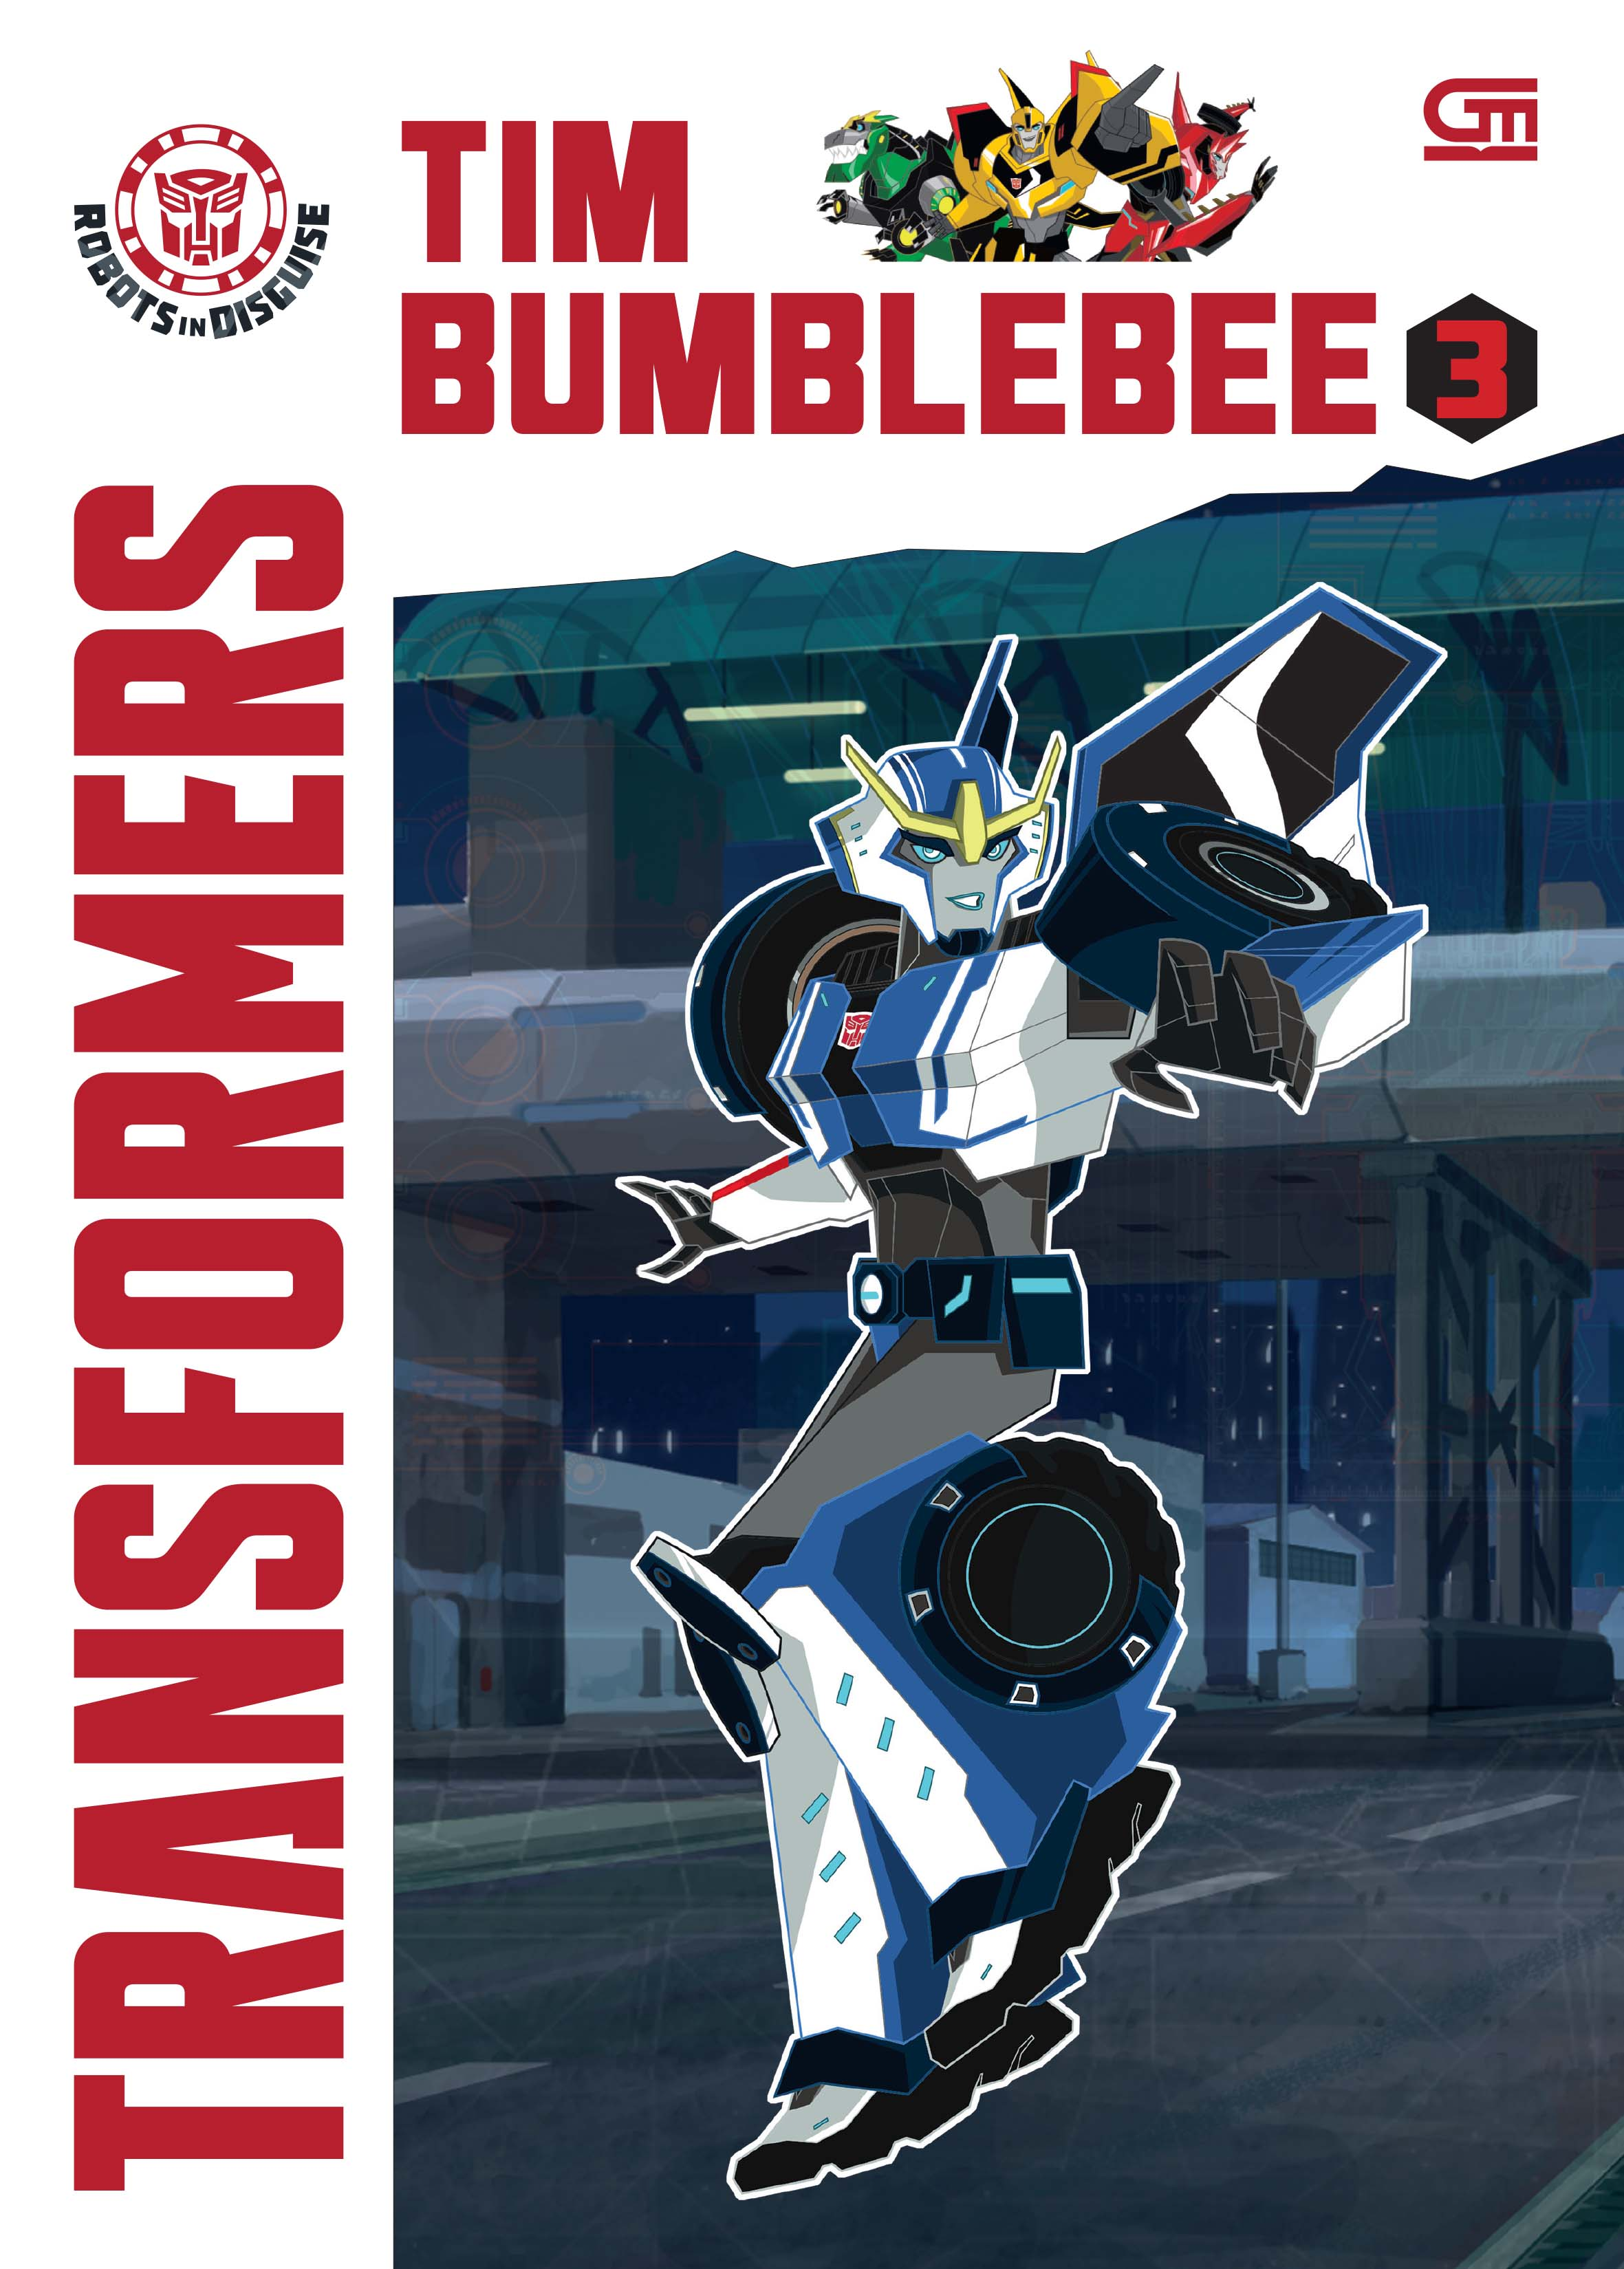 Transformers Robots in Disguise: Tim Bumblebee 3